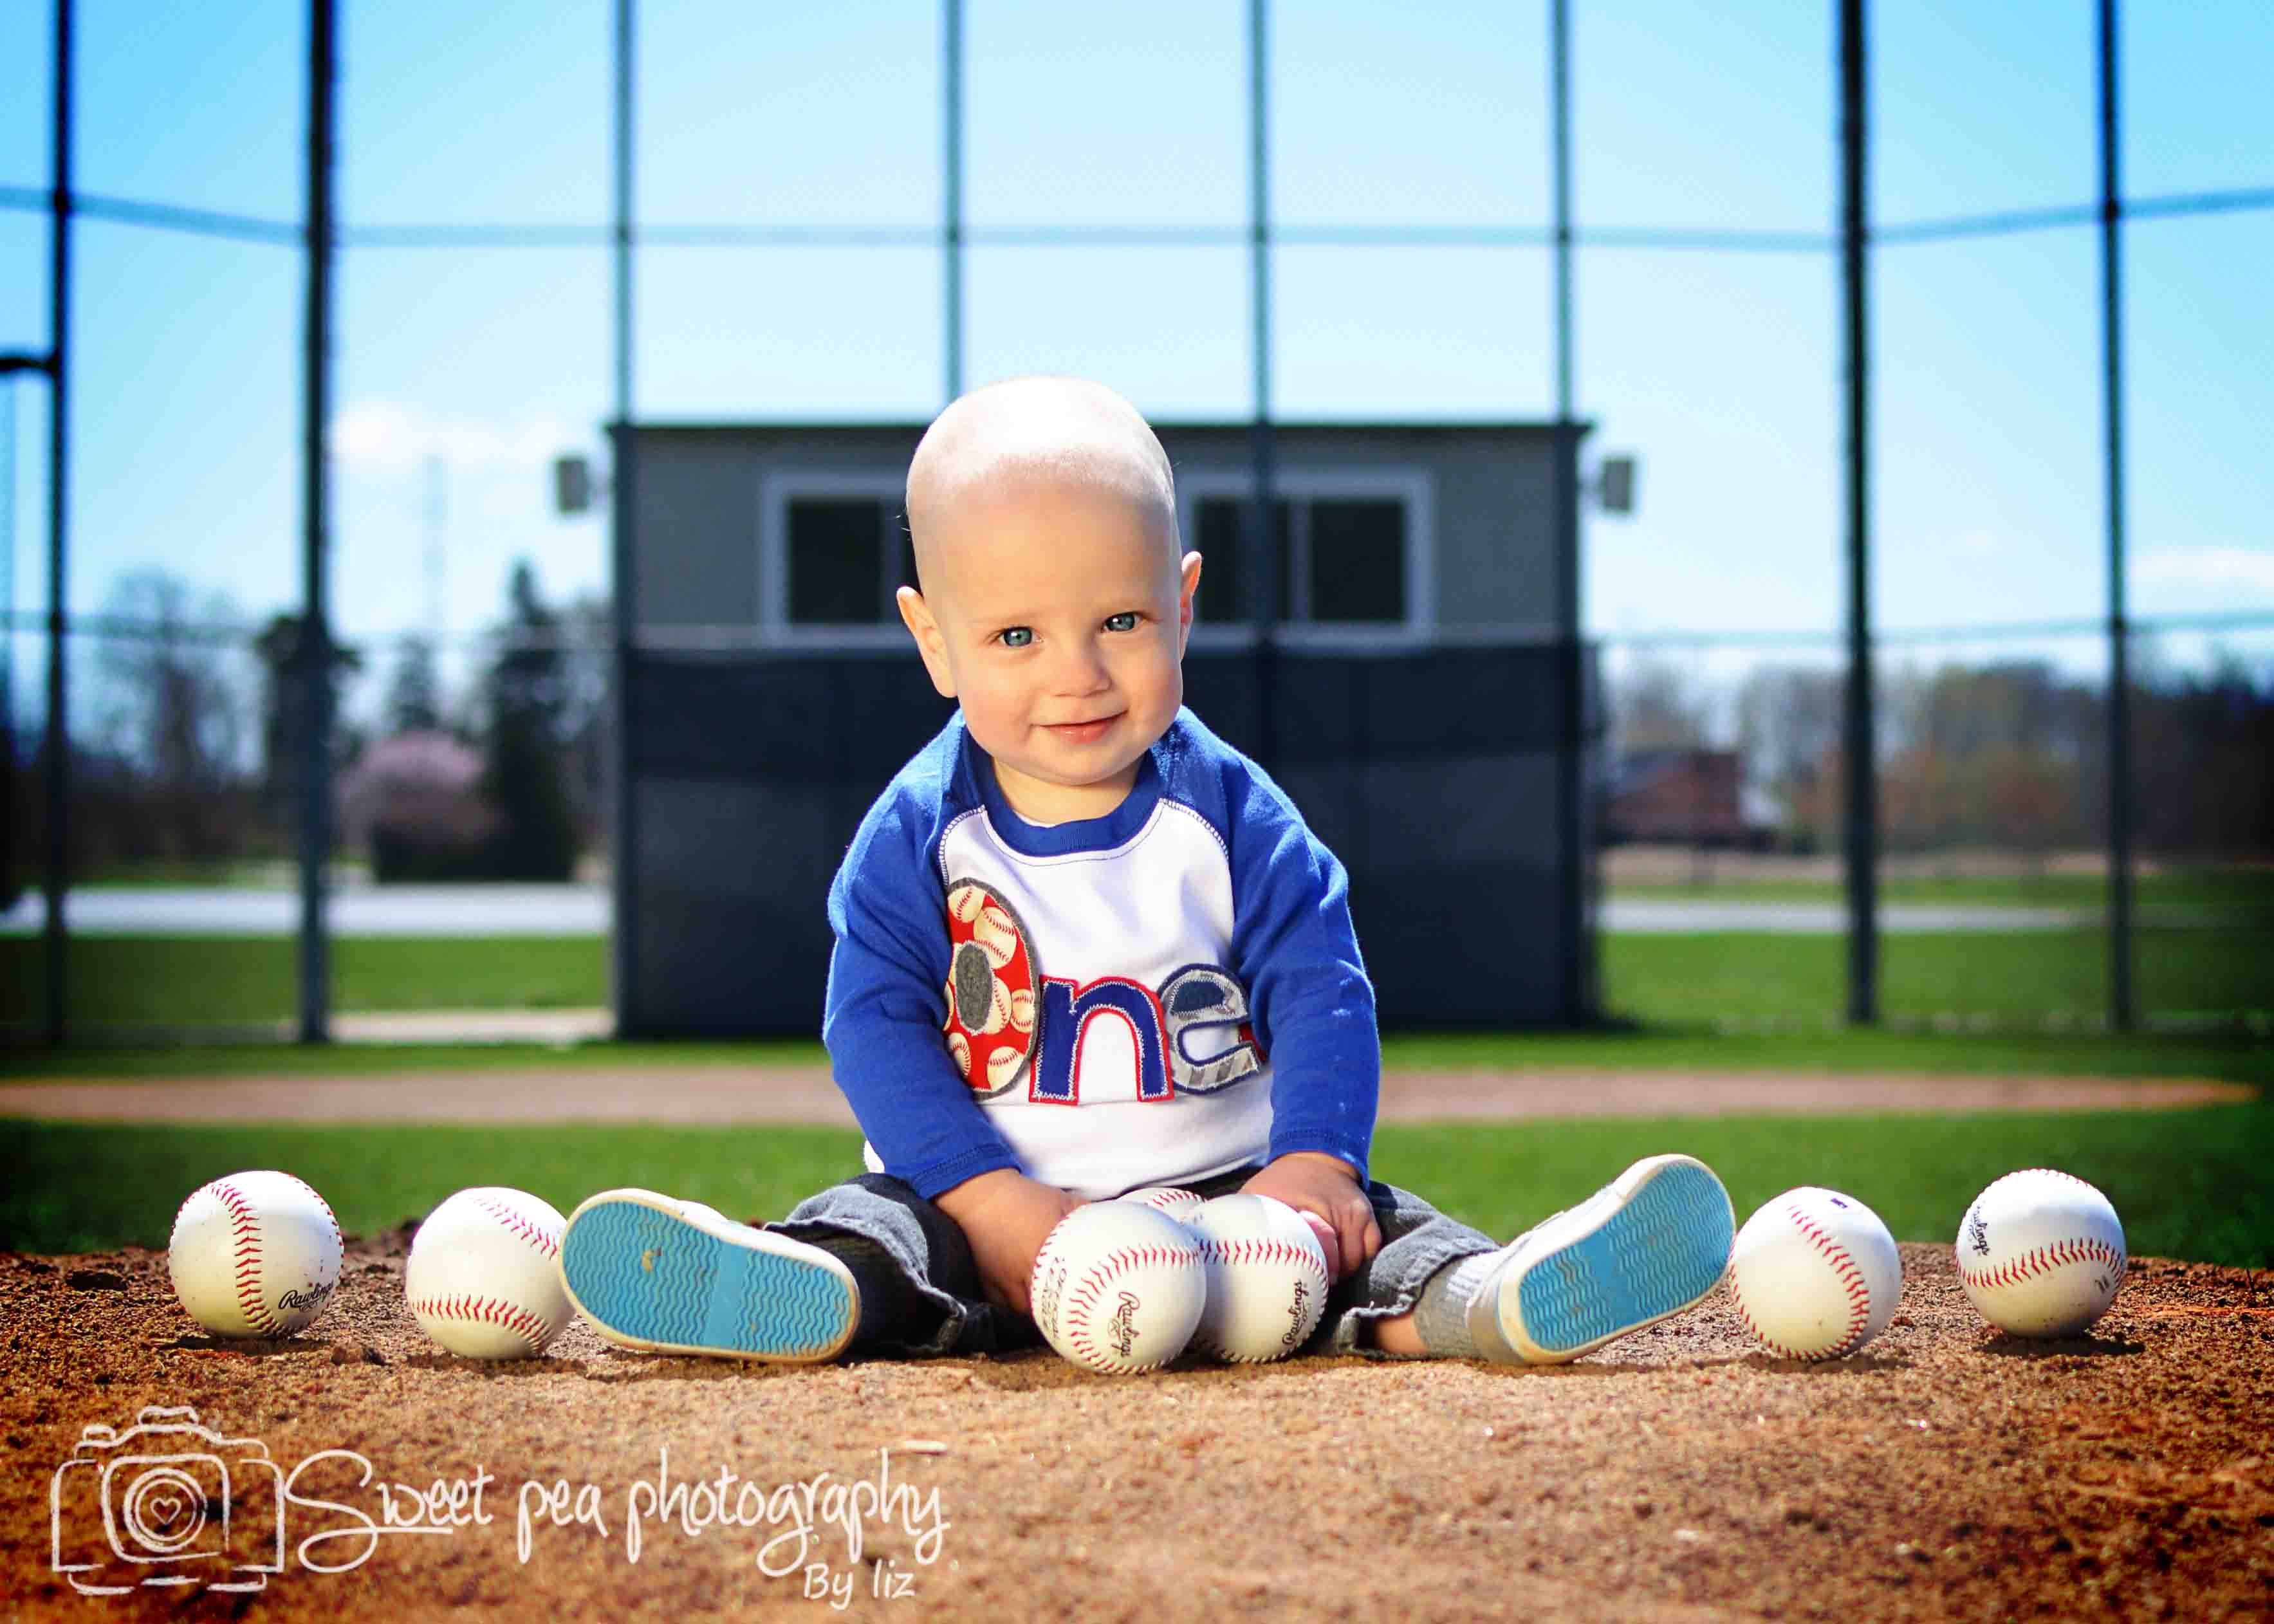 One Year Old Boy First Birthday Pictures Baseball Park Sweet Pea